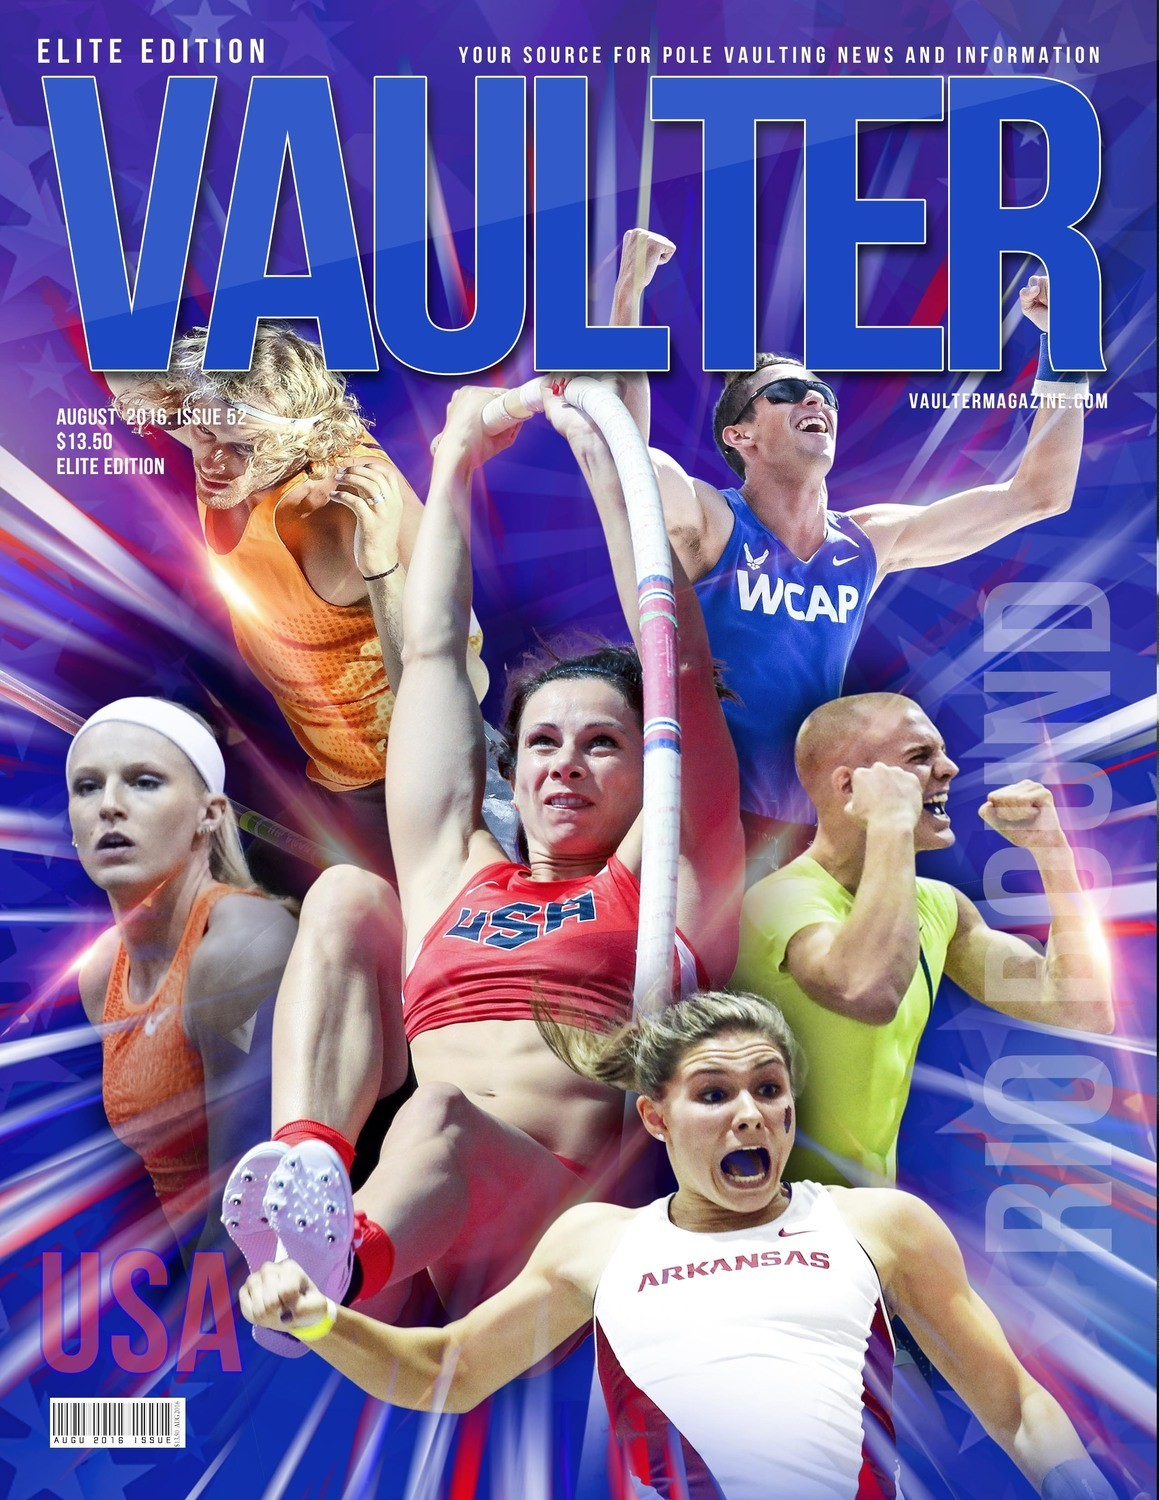 Olympic Trials Cover of Vaulter Magazine USPS Only